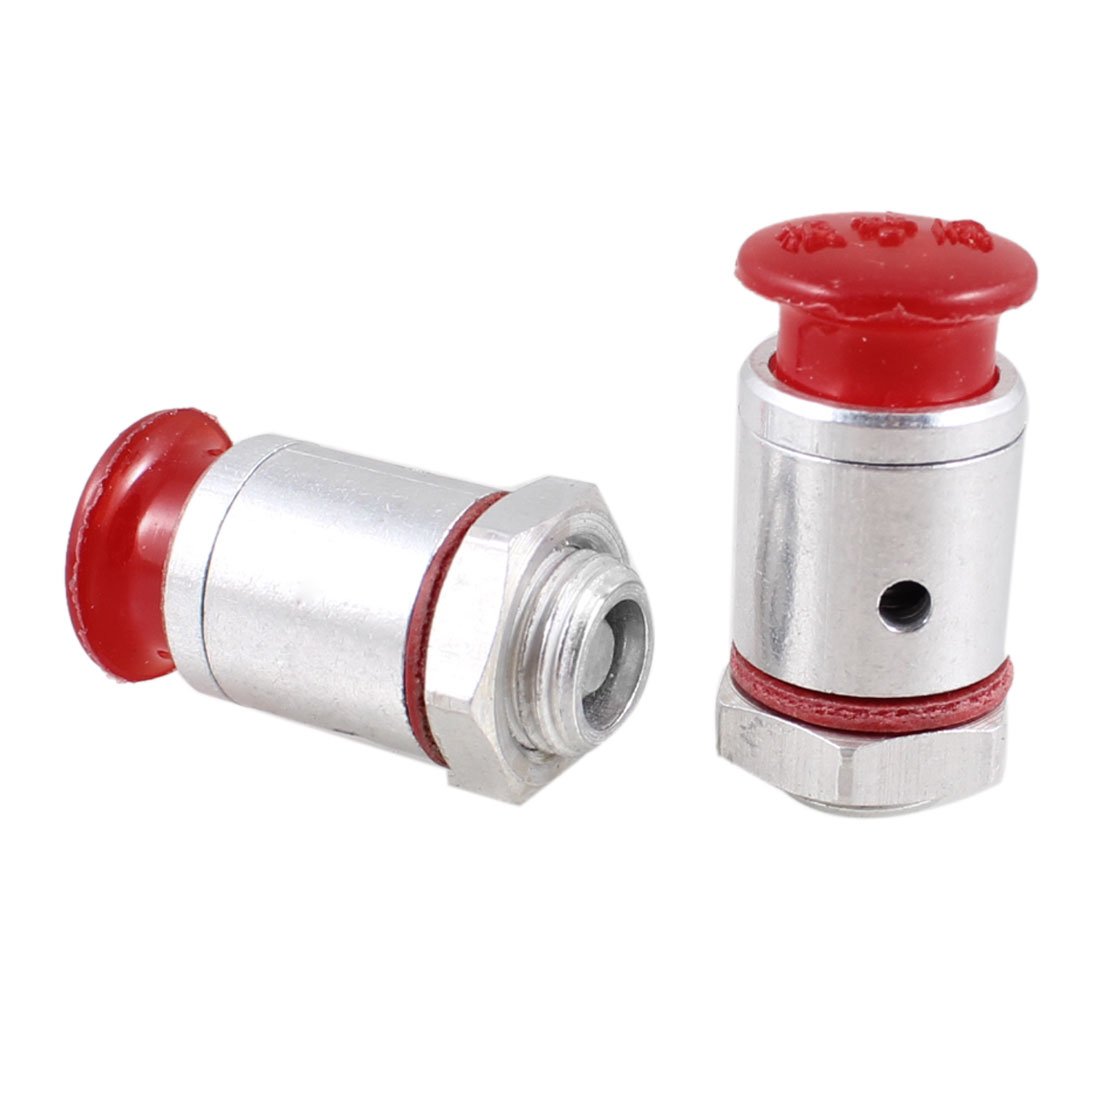 "2 Pcs 1/8"" NPT Thread Plastic Aluminium Pressure Cooker Safety Valve"